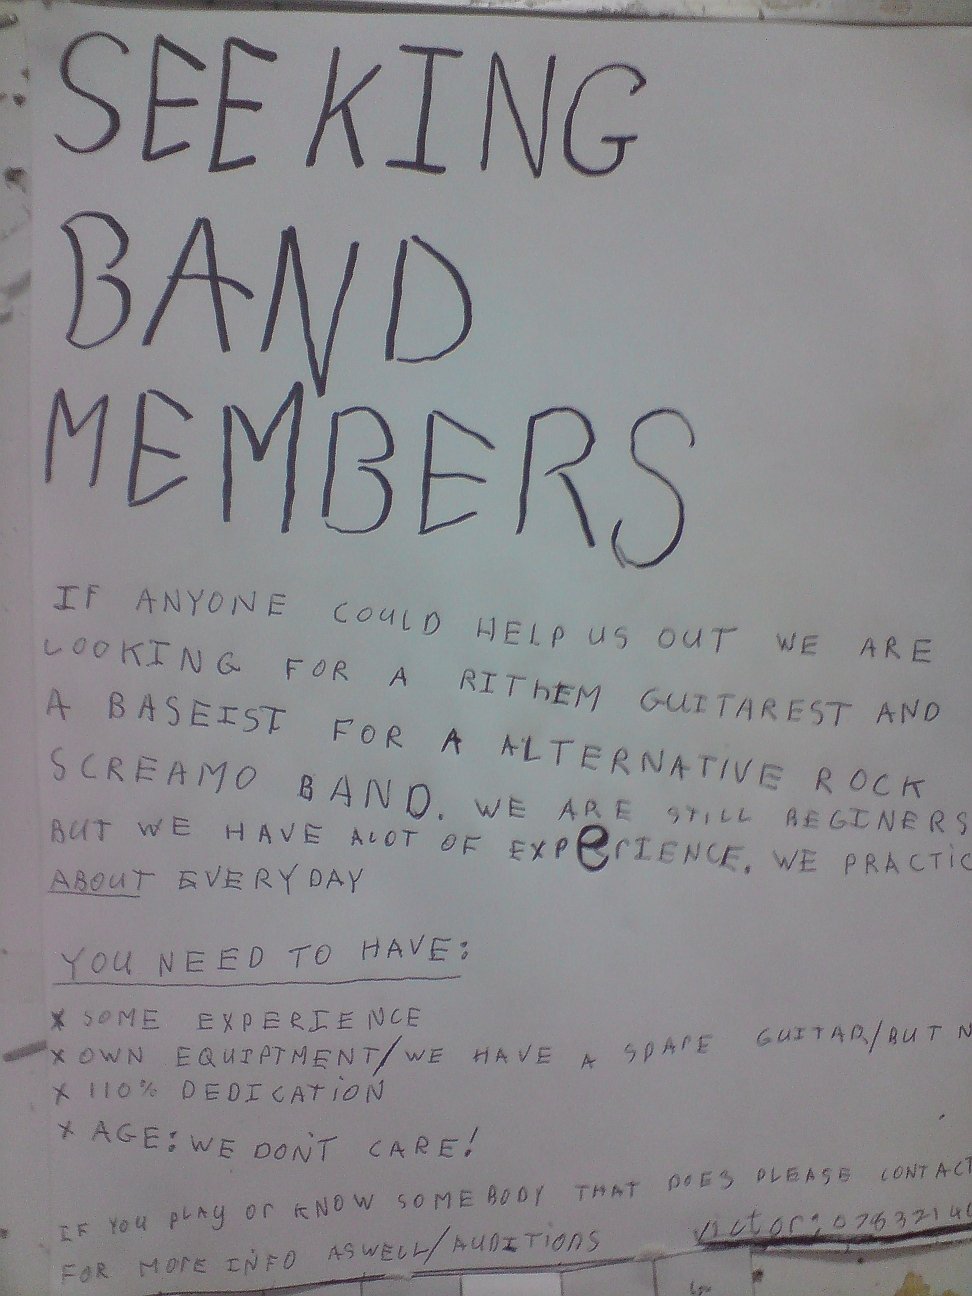 Seeking Band Members - Geplak op Spar se Community Board - Vanderbijlpark